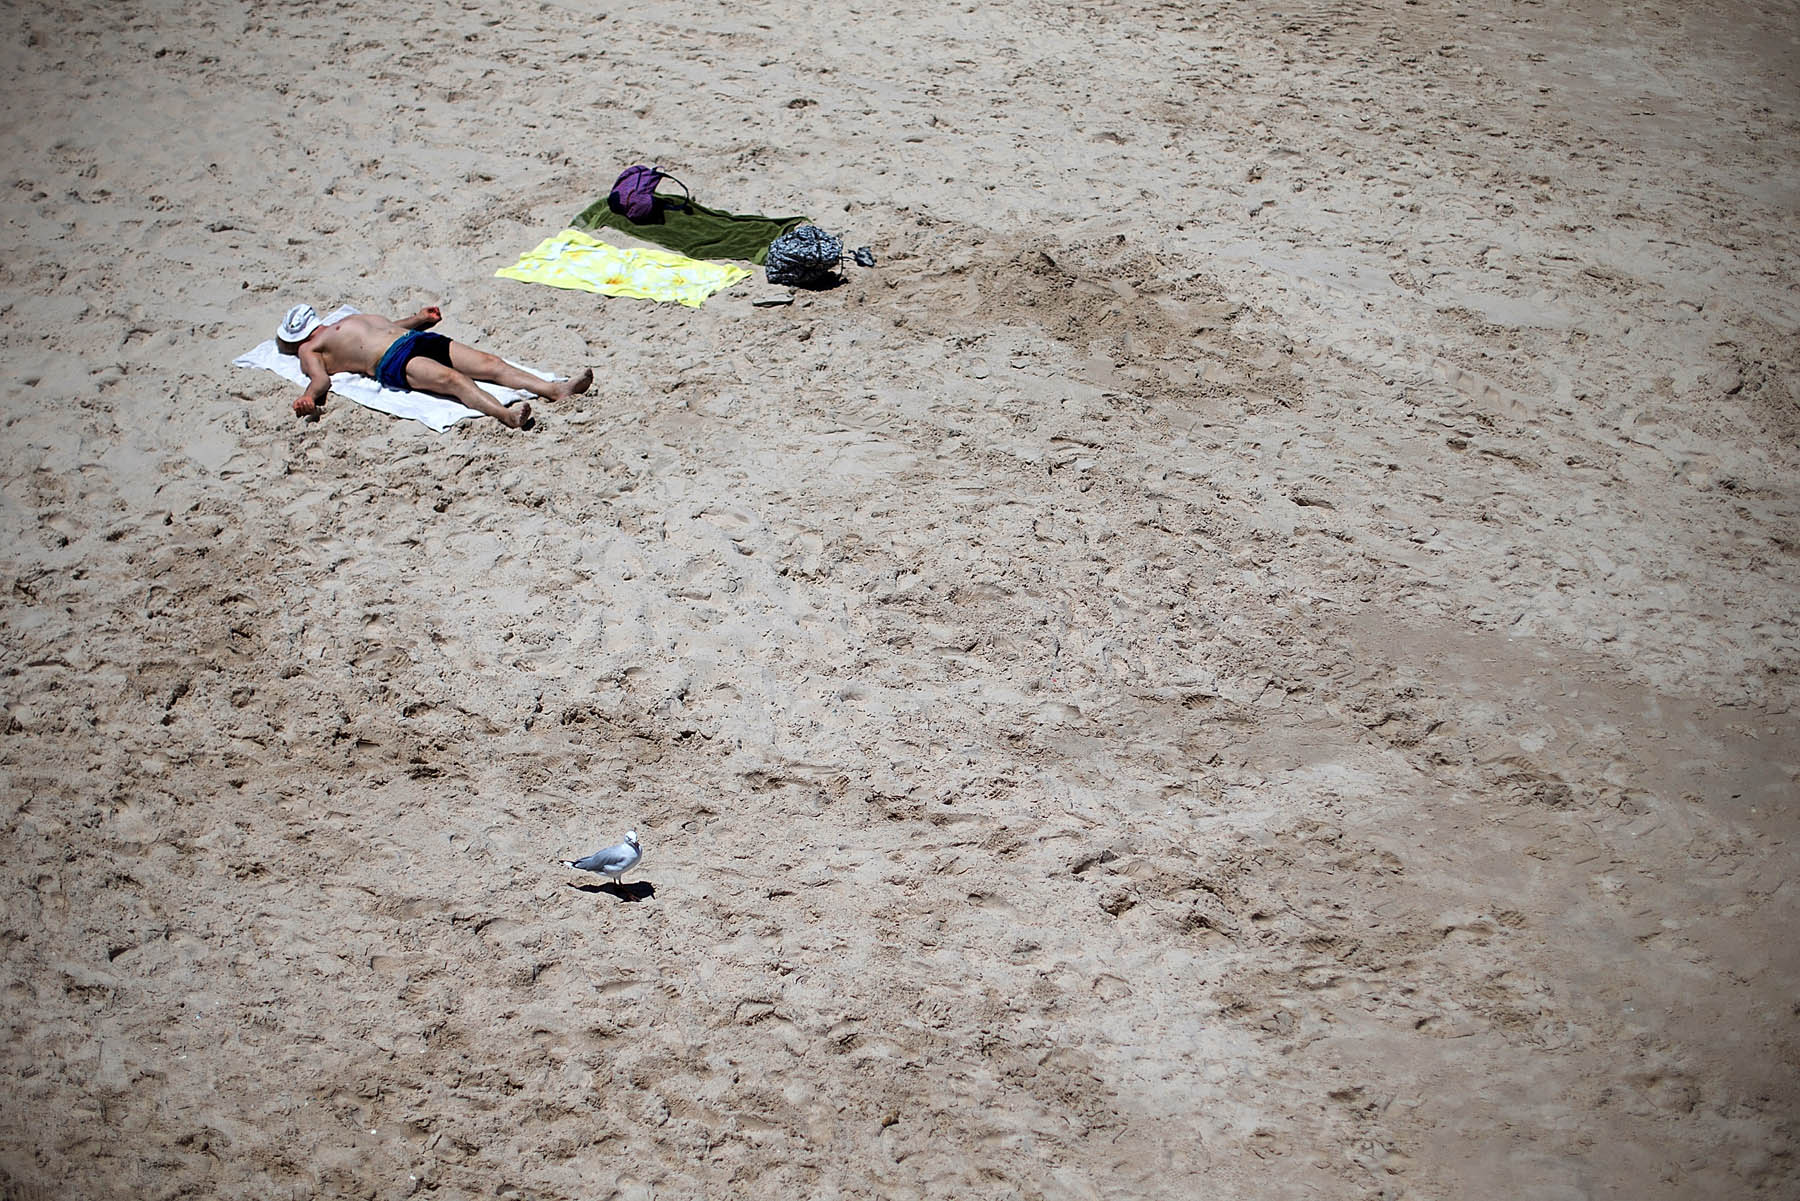 A man sunabathes in the midday sun during a heat wave at Glenelg beach on Jan. 13, 2014 in Adelaide, Australia.